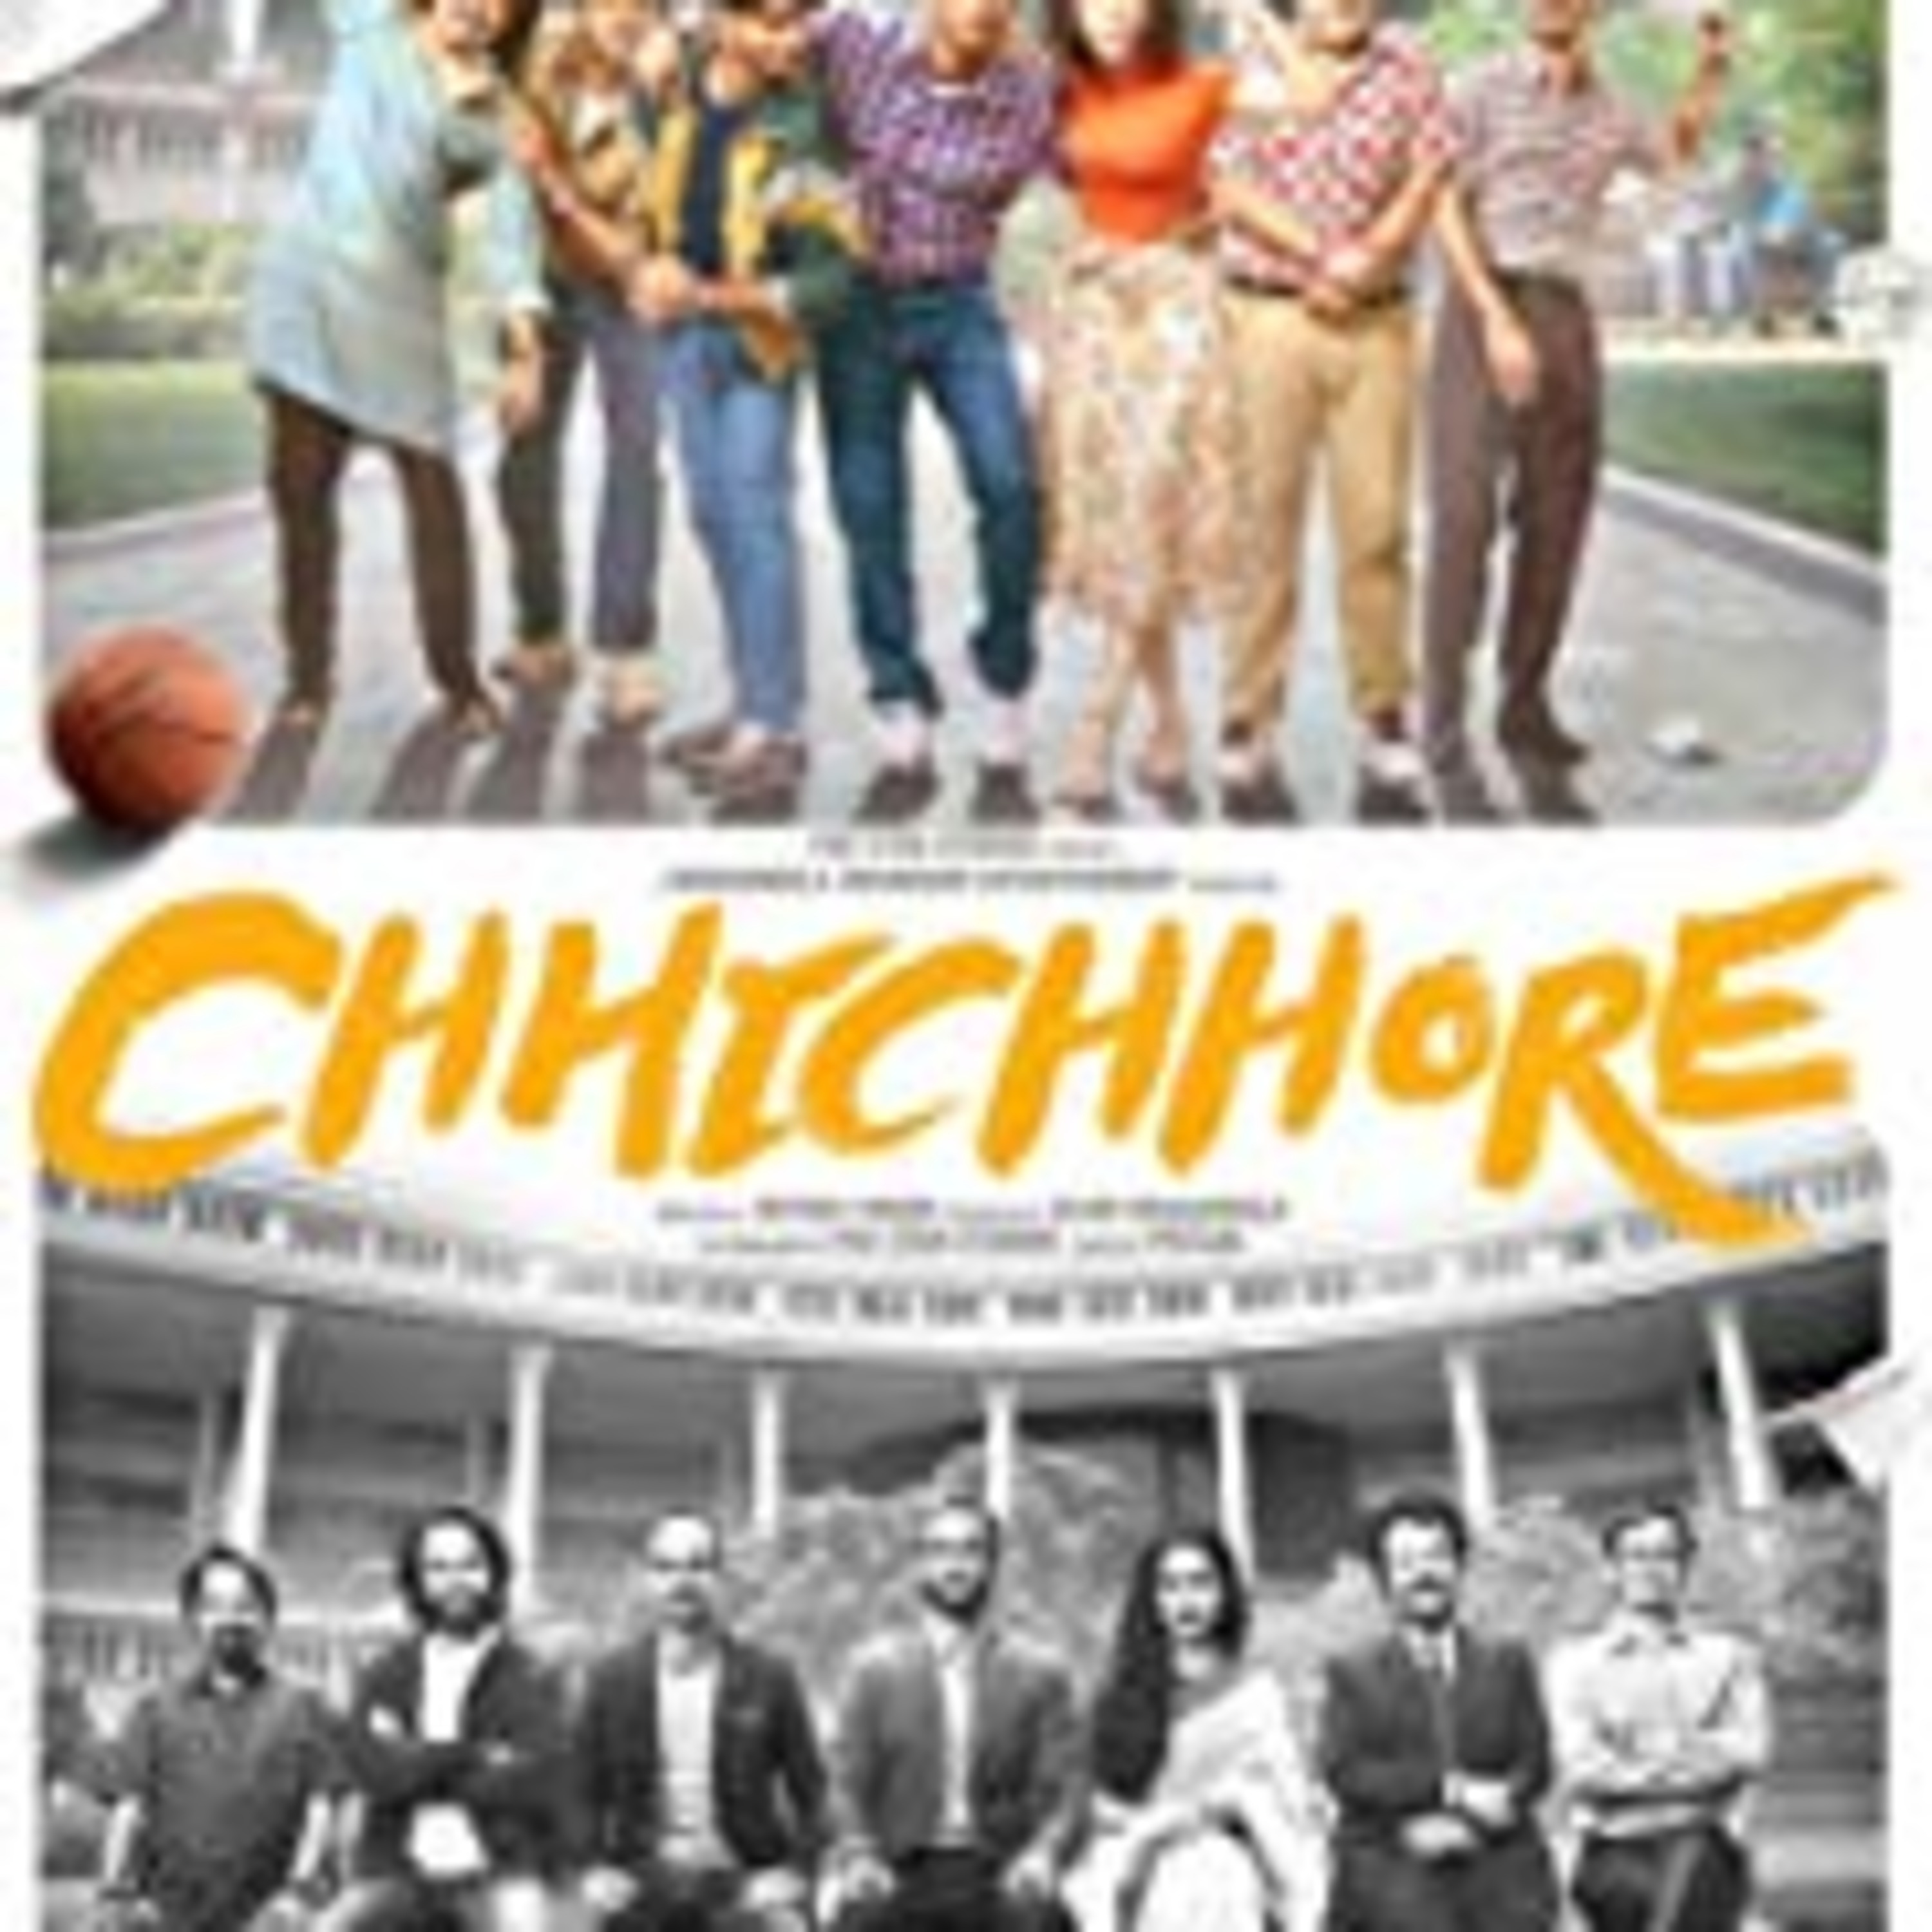 Download Chhichhore 2019 Movies Counter Full Free HD Online